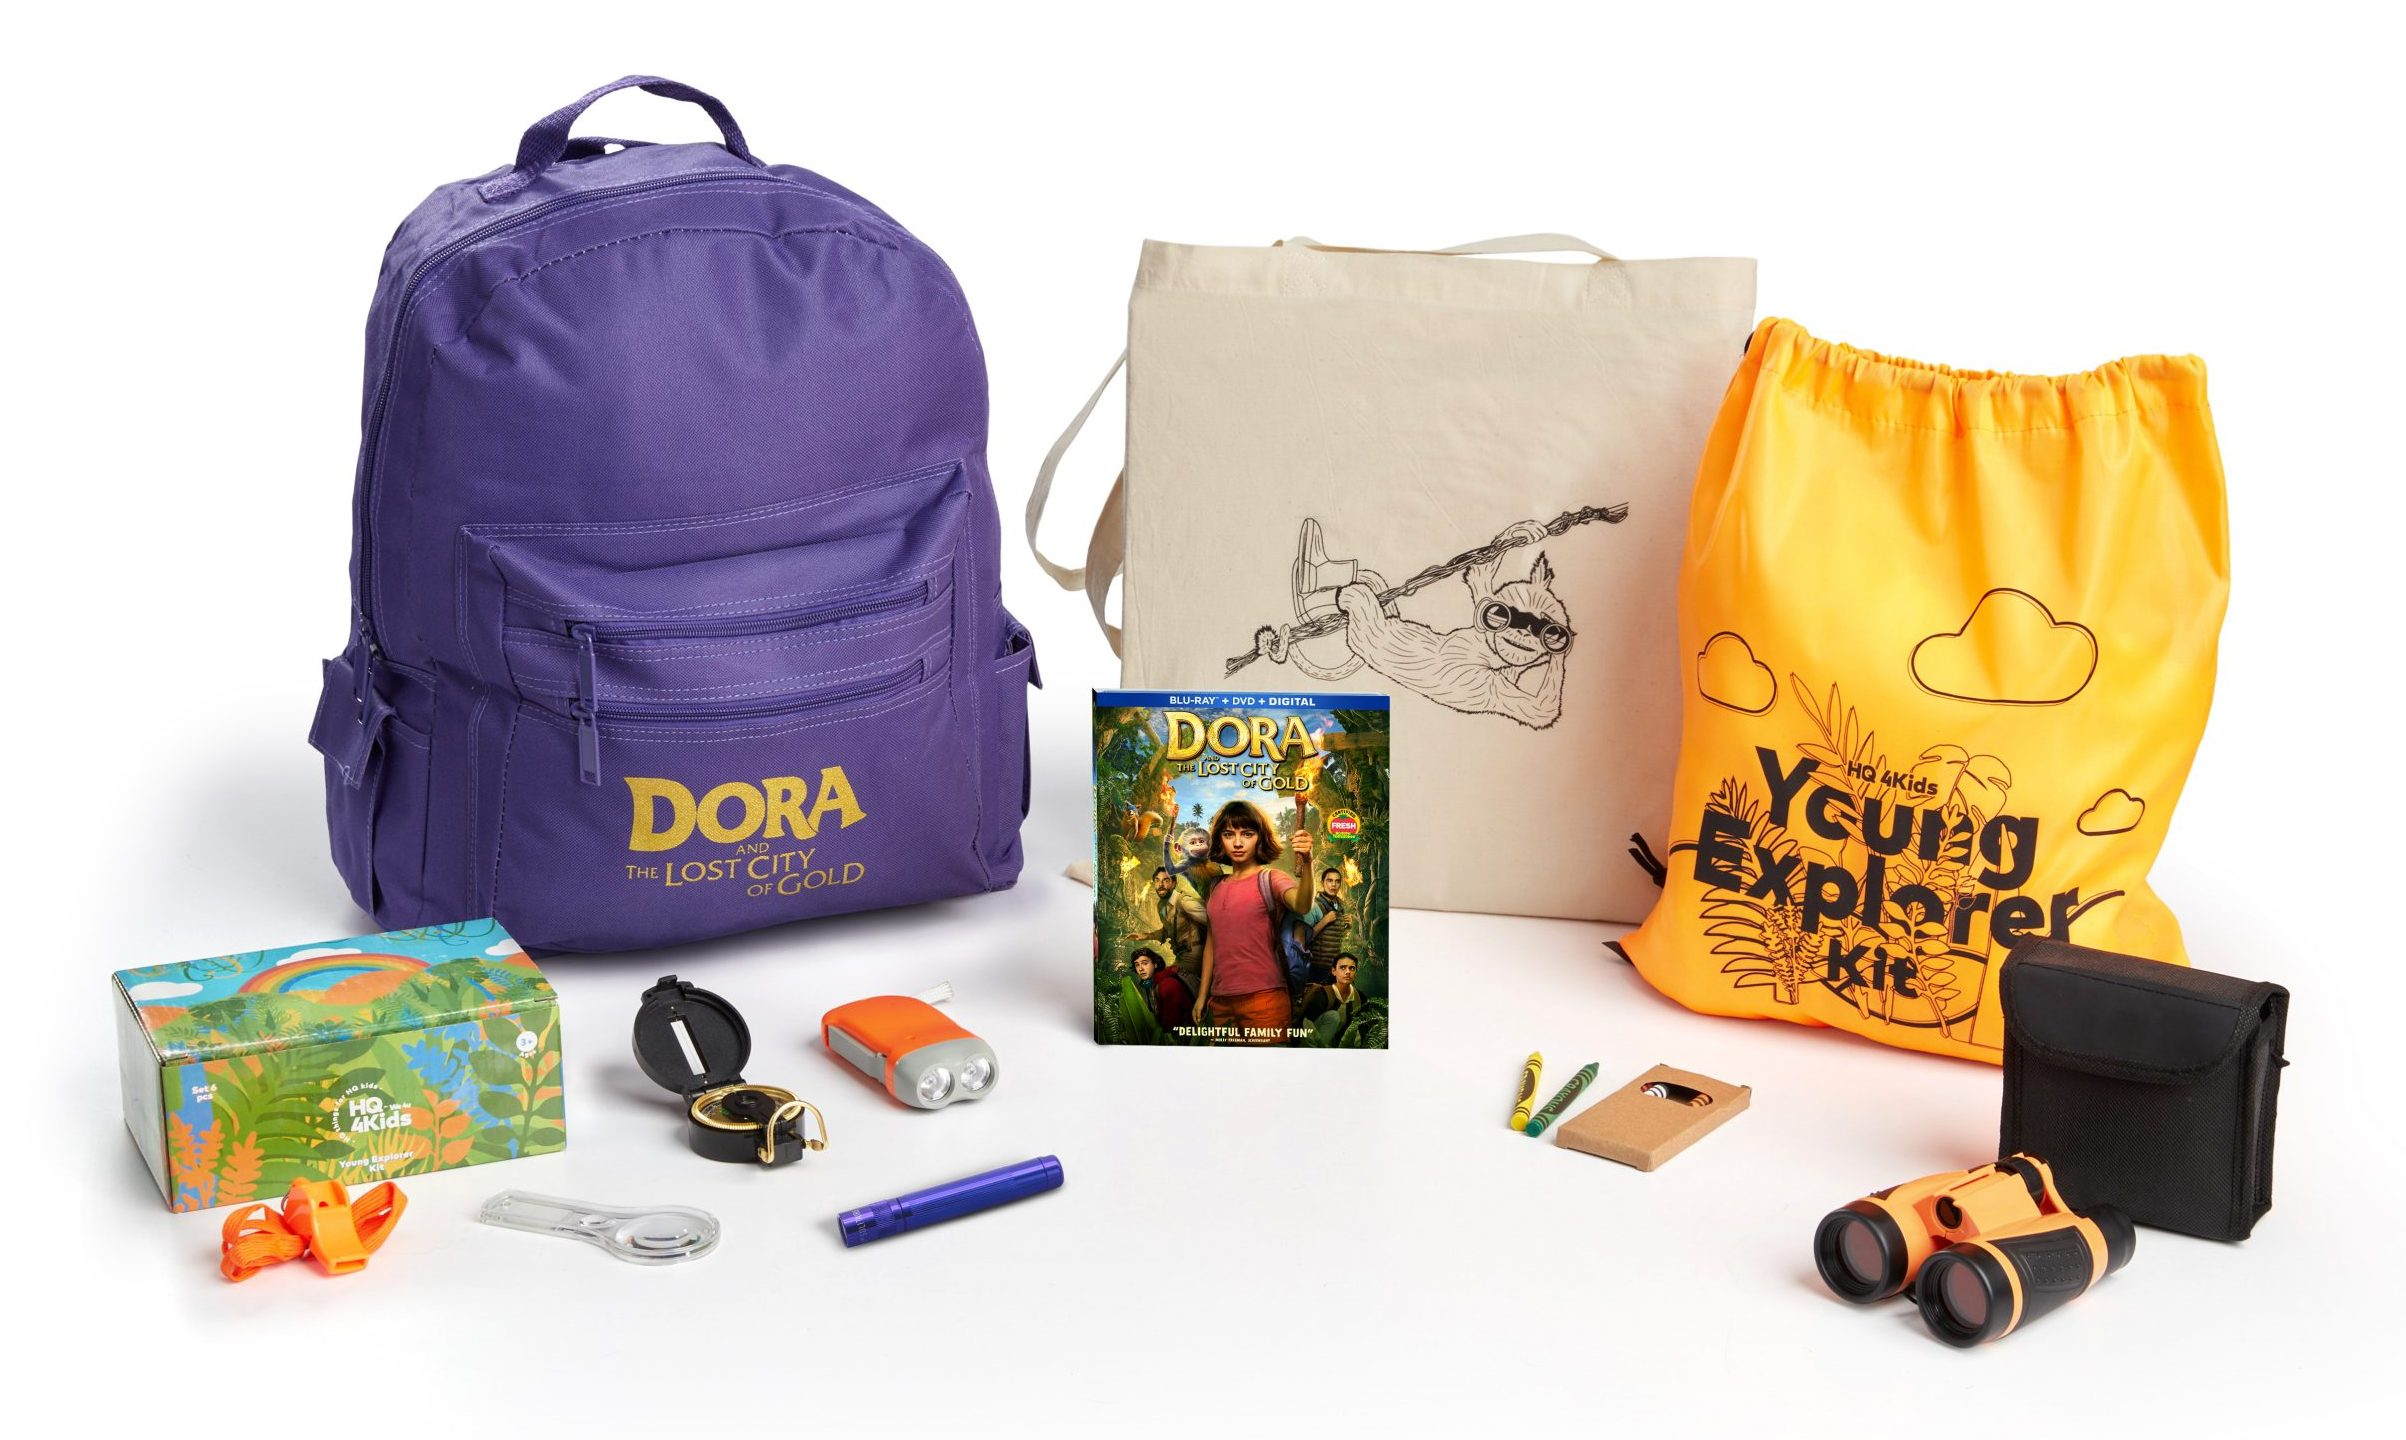 Dora And The Lost City of Gold Movie Prize Pack